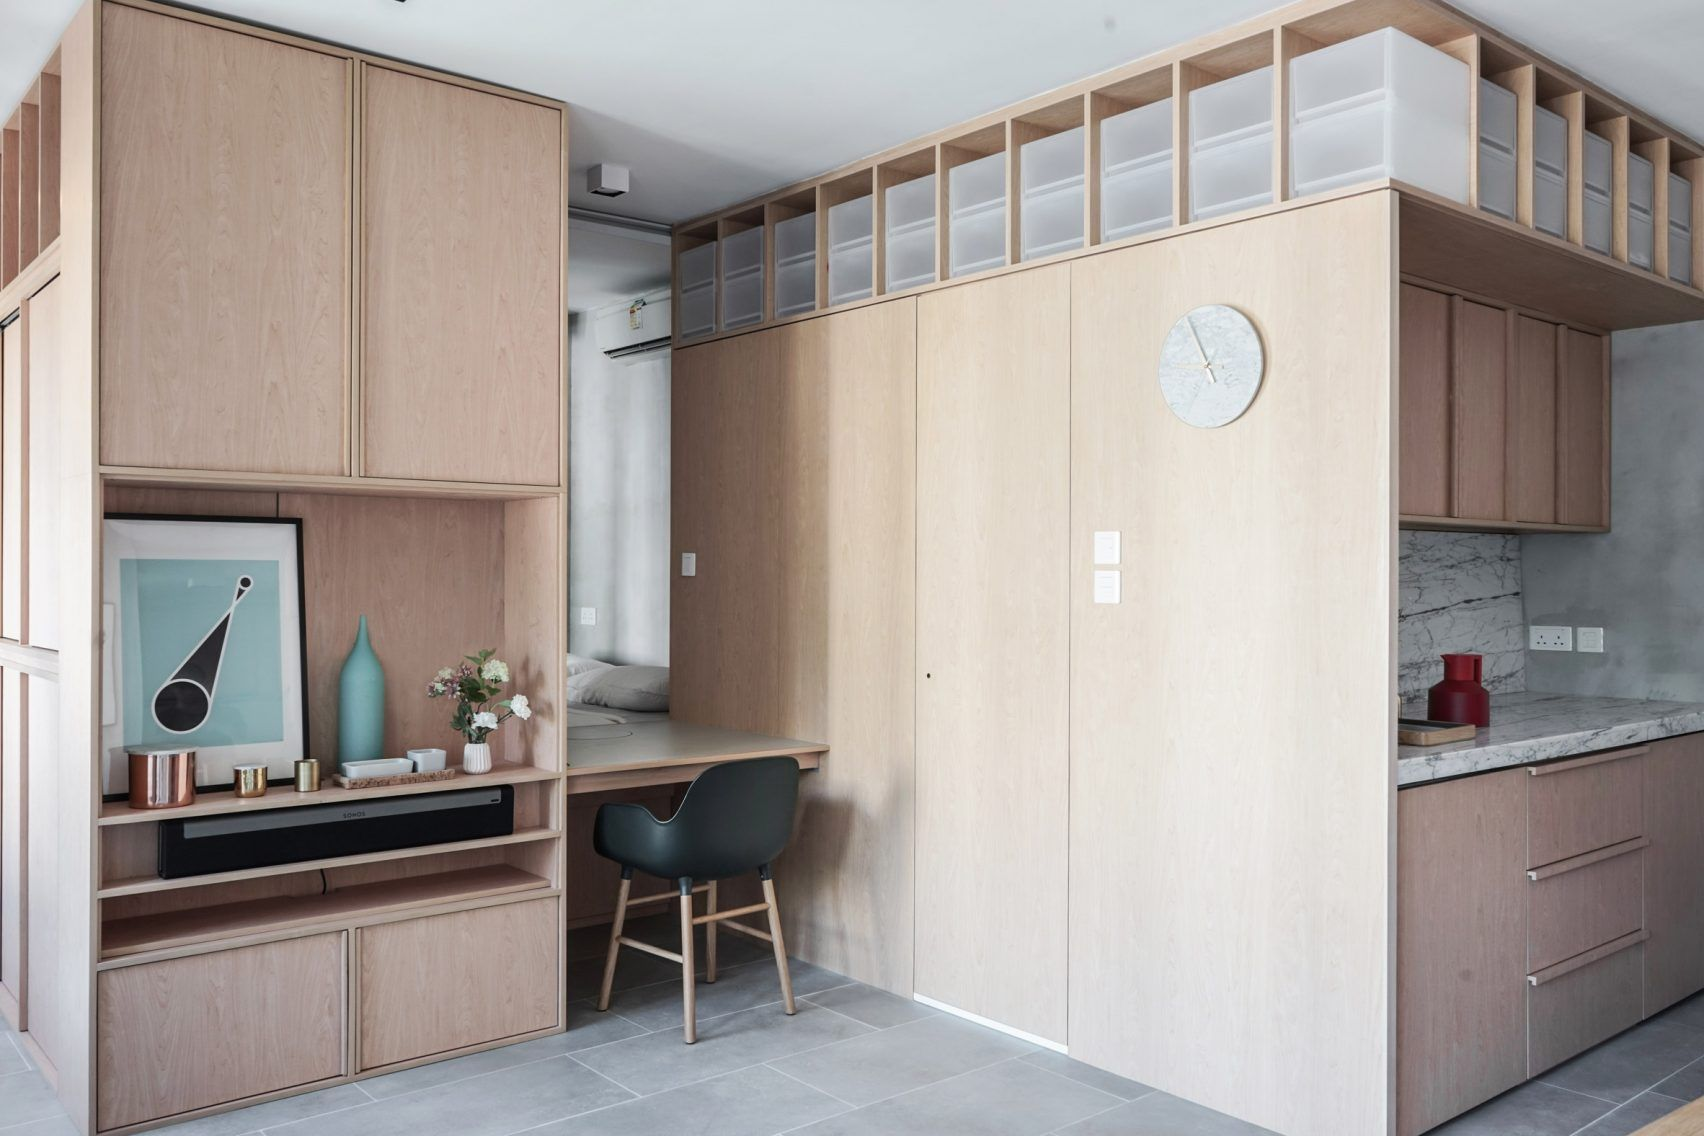 JAAK reconfigures Hong Kong apartment with space-saving cabinetry ...